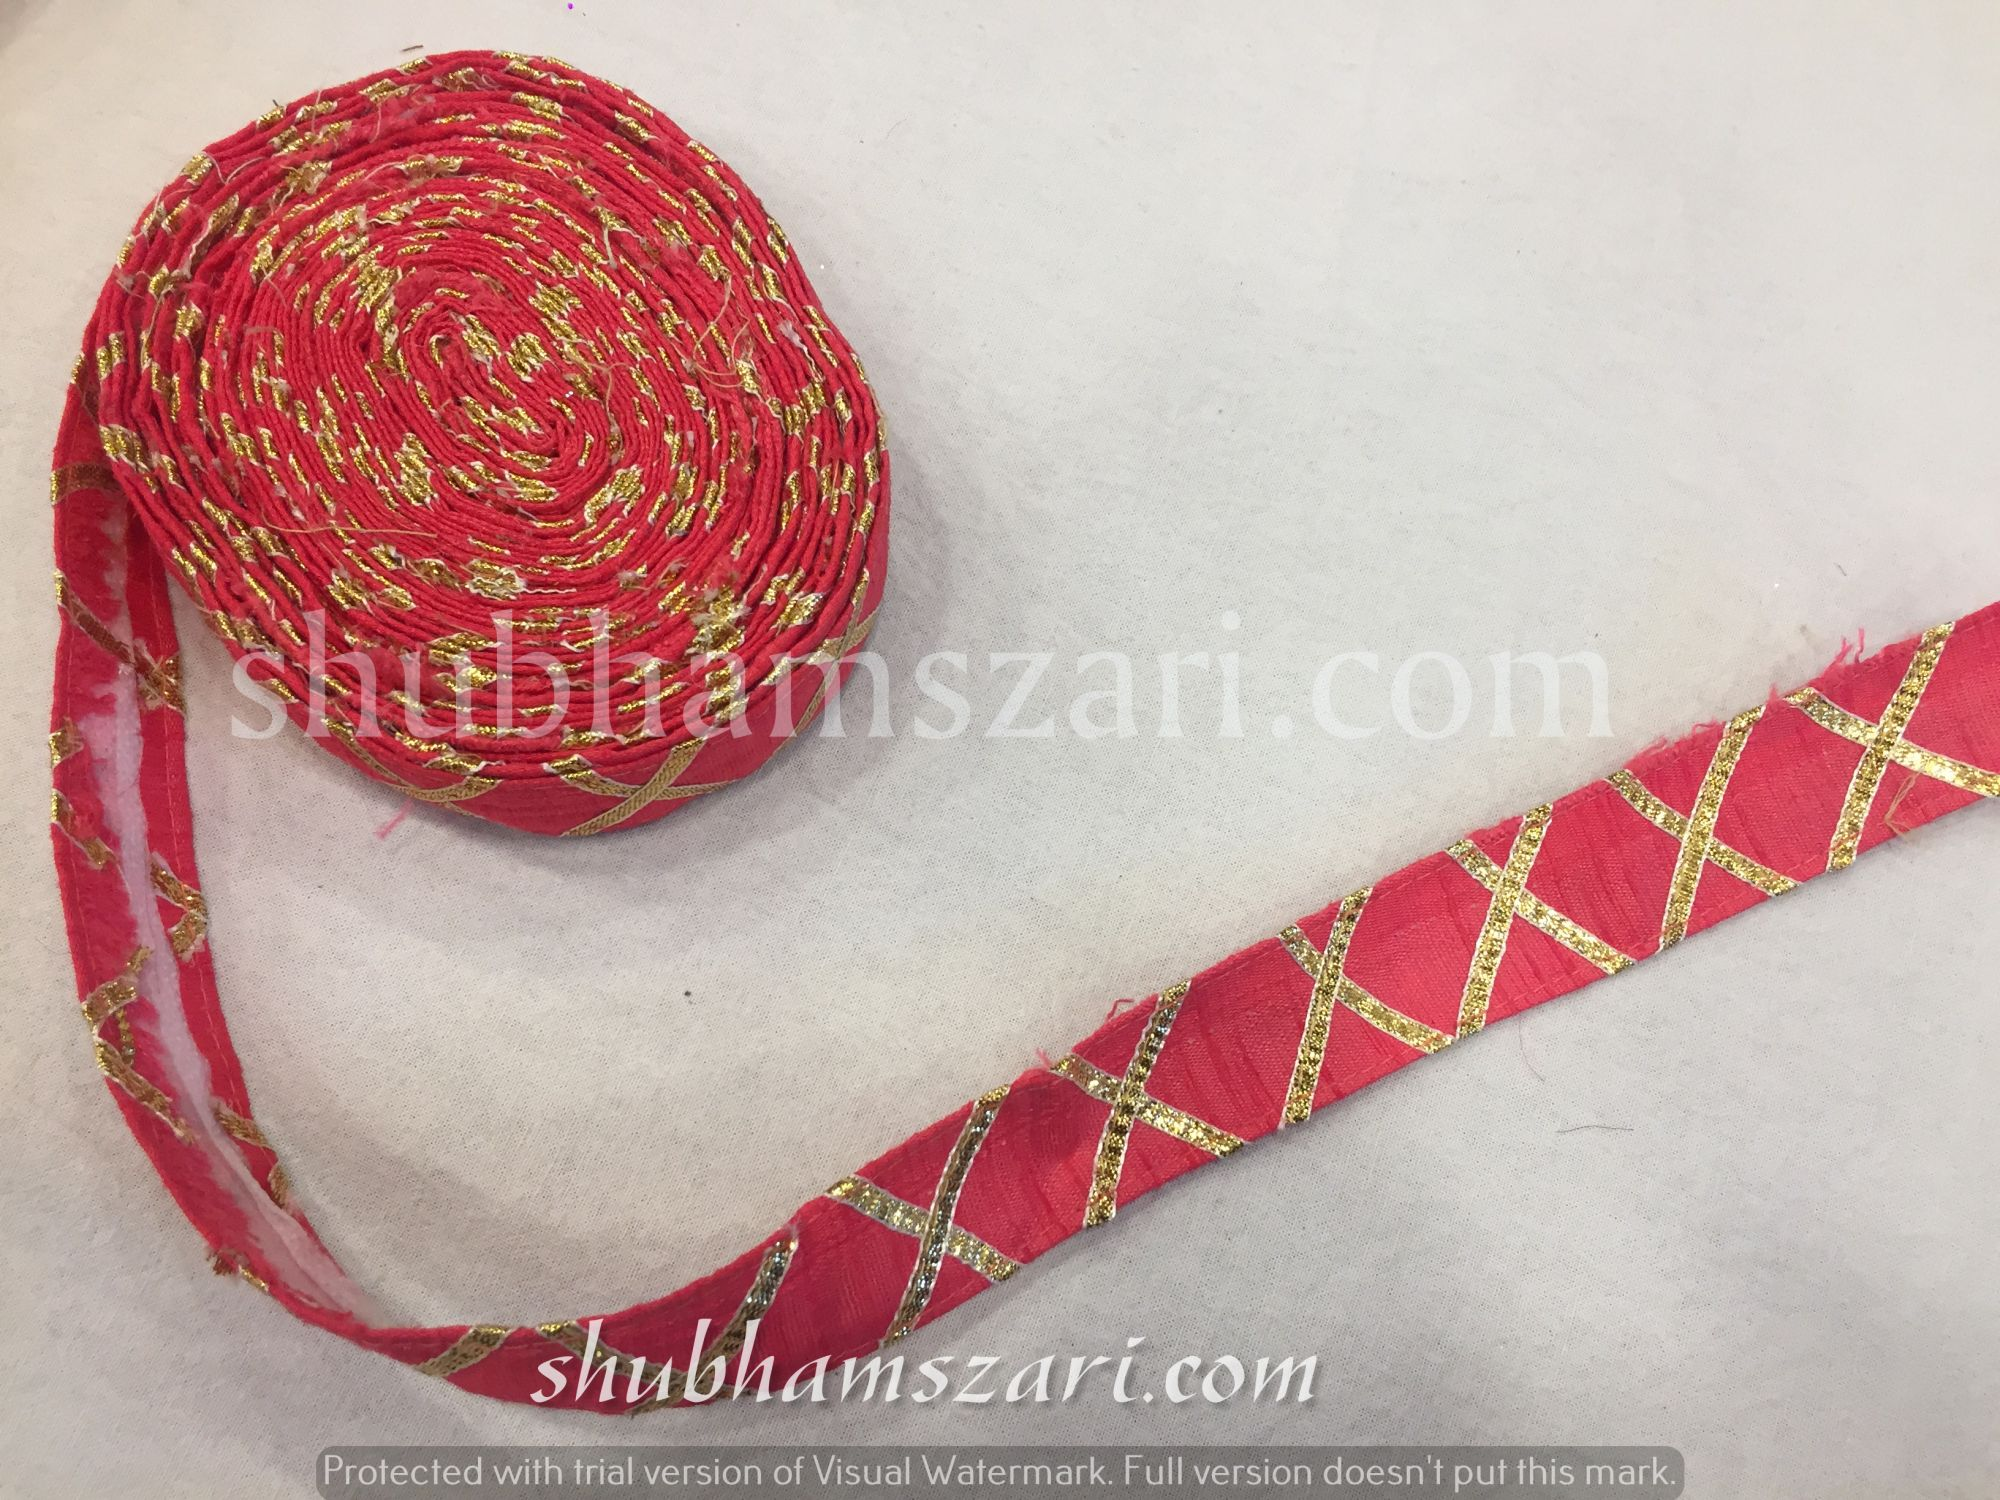 RED color handmade embellish dupatta lace|| crafting ribbon tape || curtain fabric trim || edging for cushion covers